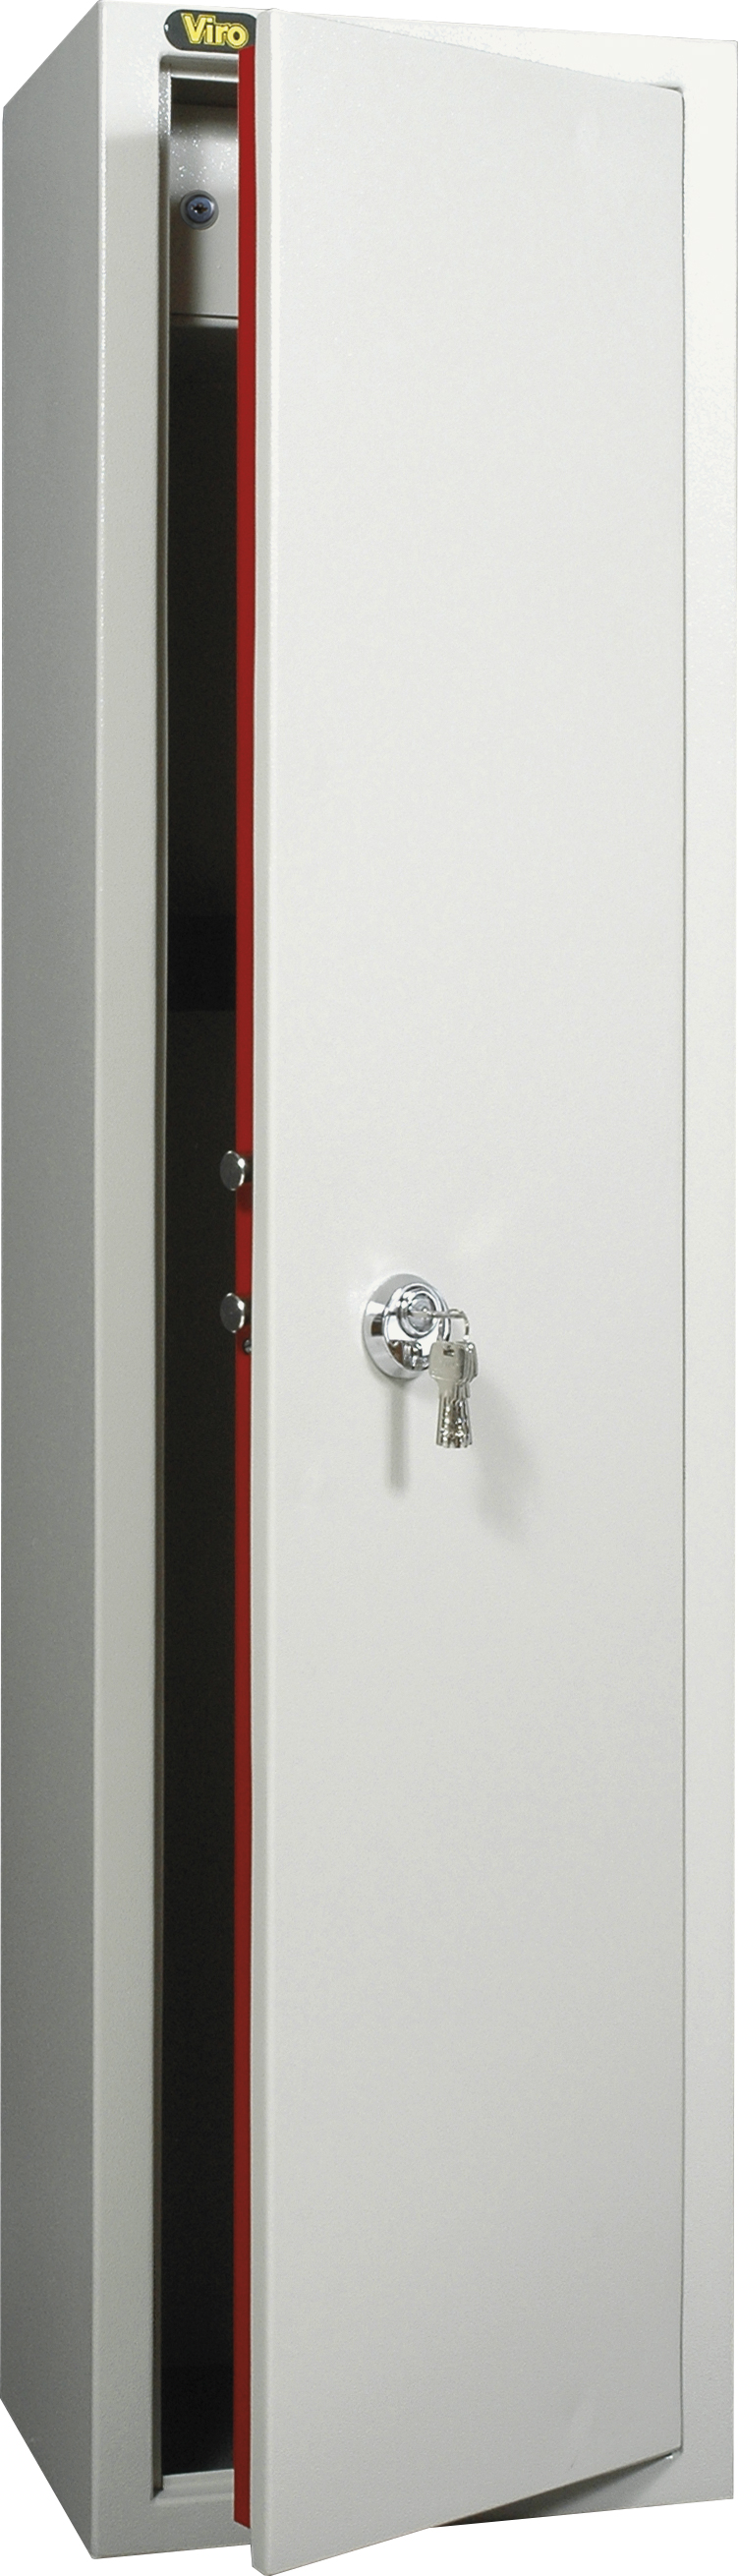 VIRO - with-dimple-key-cylinder---armoured-with-security-escutcheon---gun-cabinets